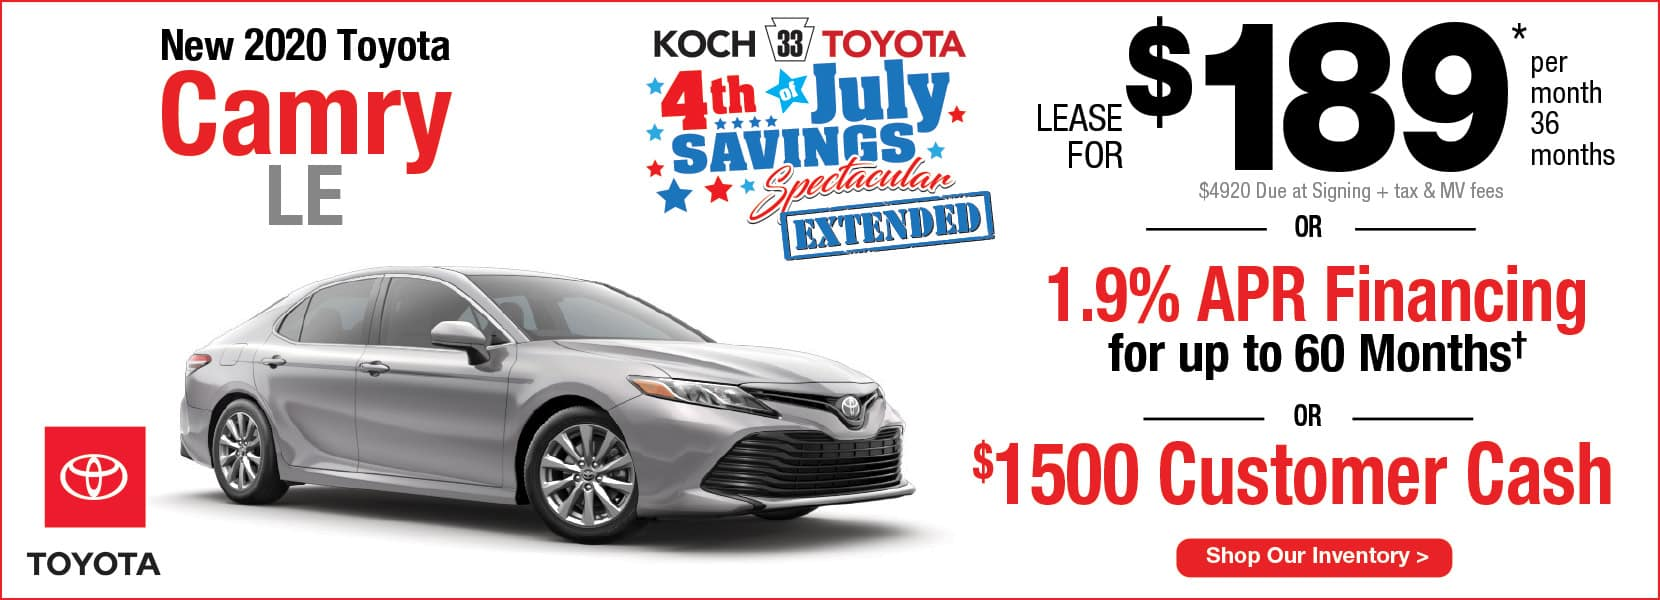 New 2020 Toyota Camry LE Lease Koch 33 Toyota Easton PA